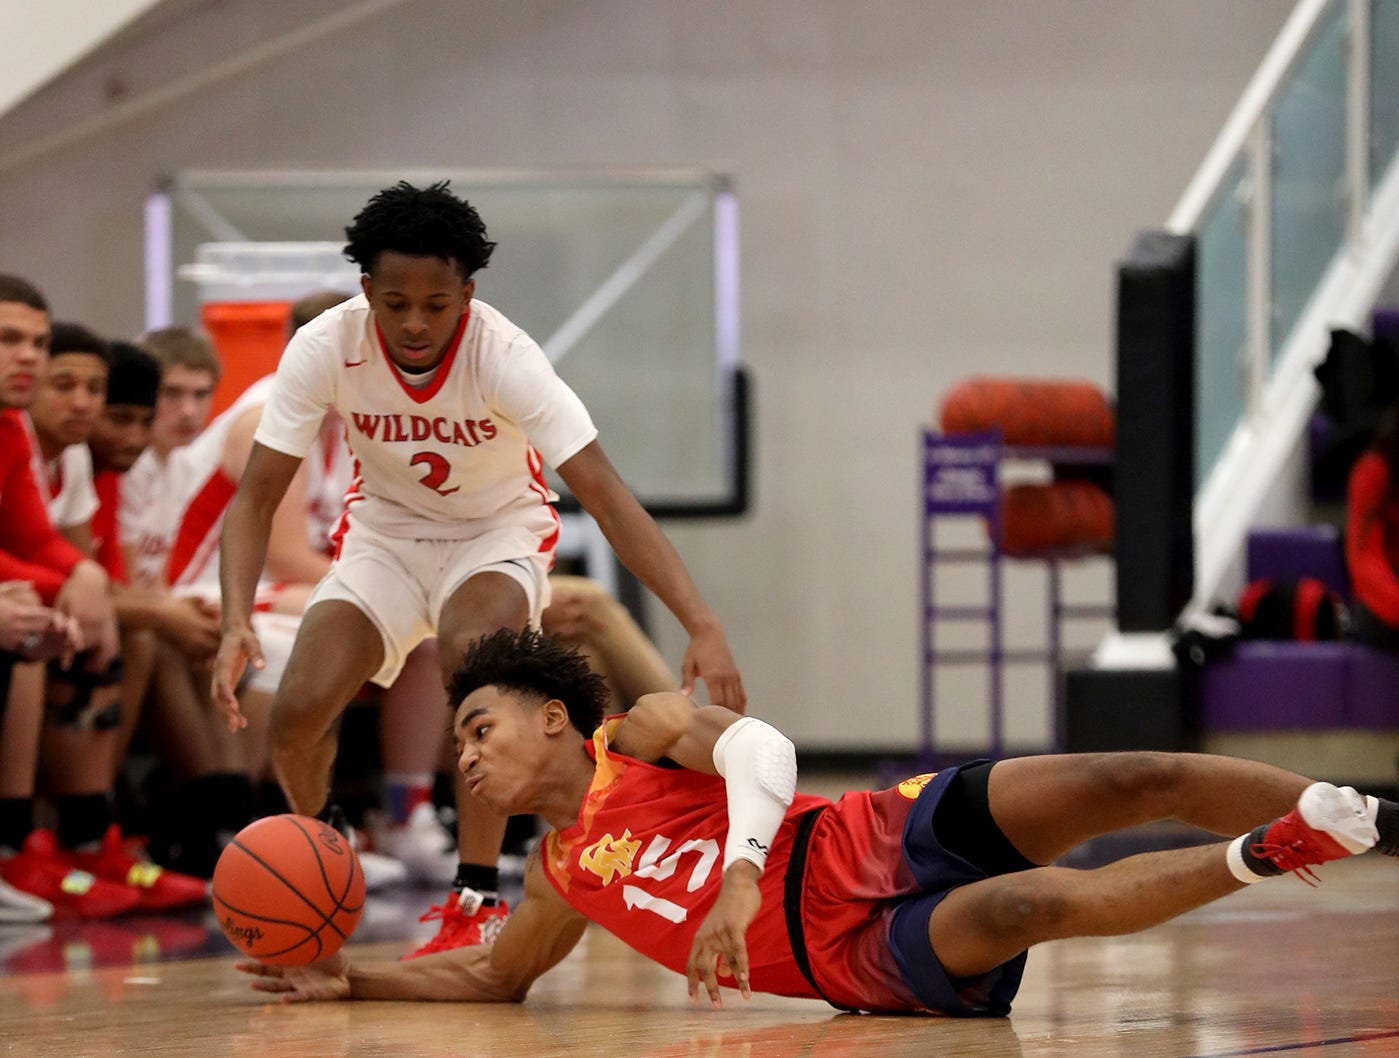 Purcell Marian guard Clark Jefferson battles Steve Gentry of Deer Park for a loose ball during their basketball game at the Midwest Classic, Sunday, Jan. 20, 2019.